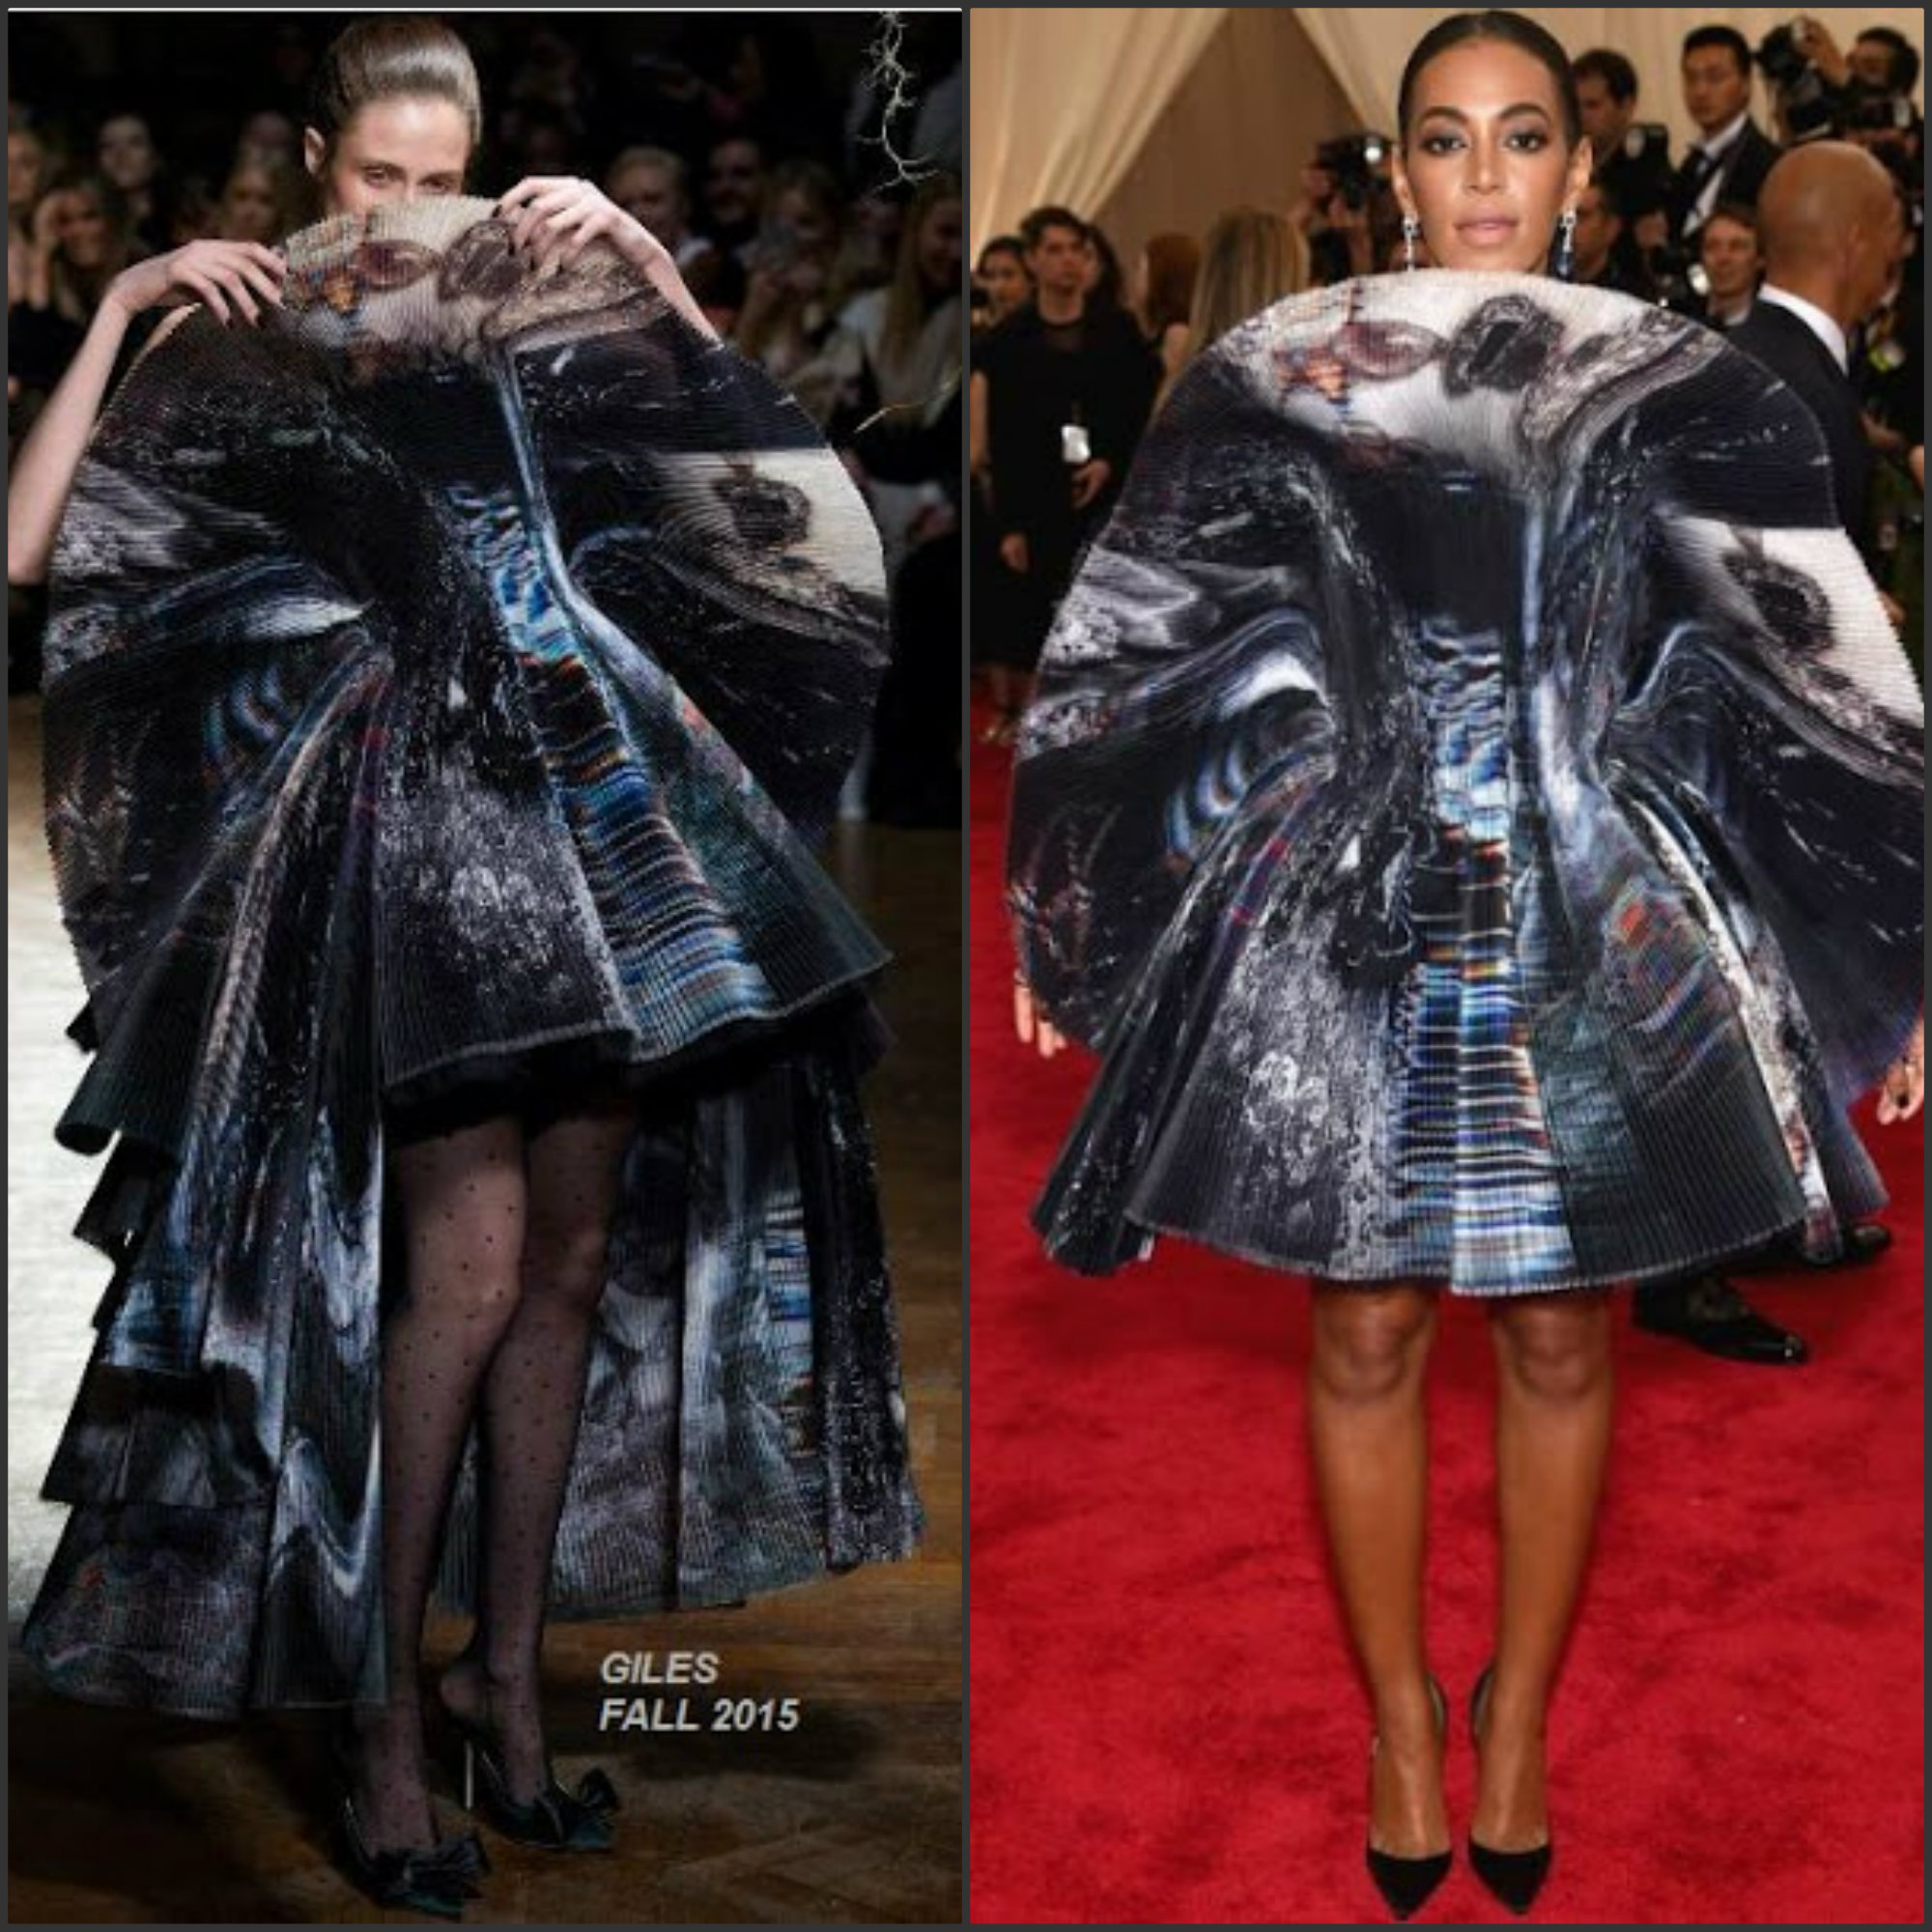 solange-knowles-in-giles-at-the-2015-met-gala